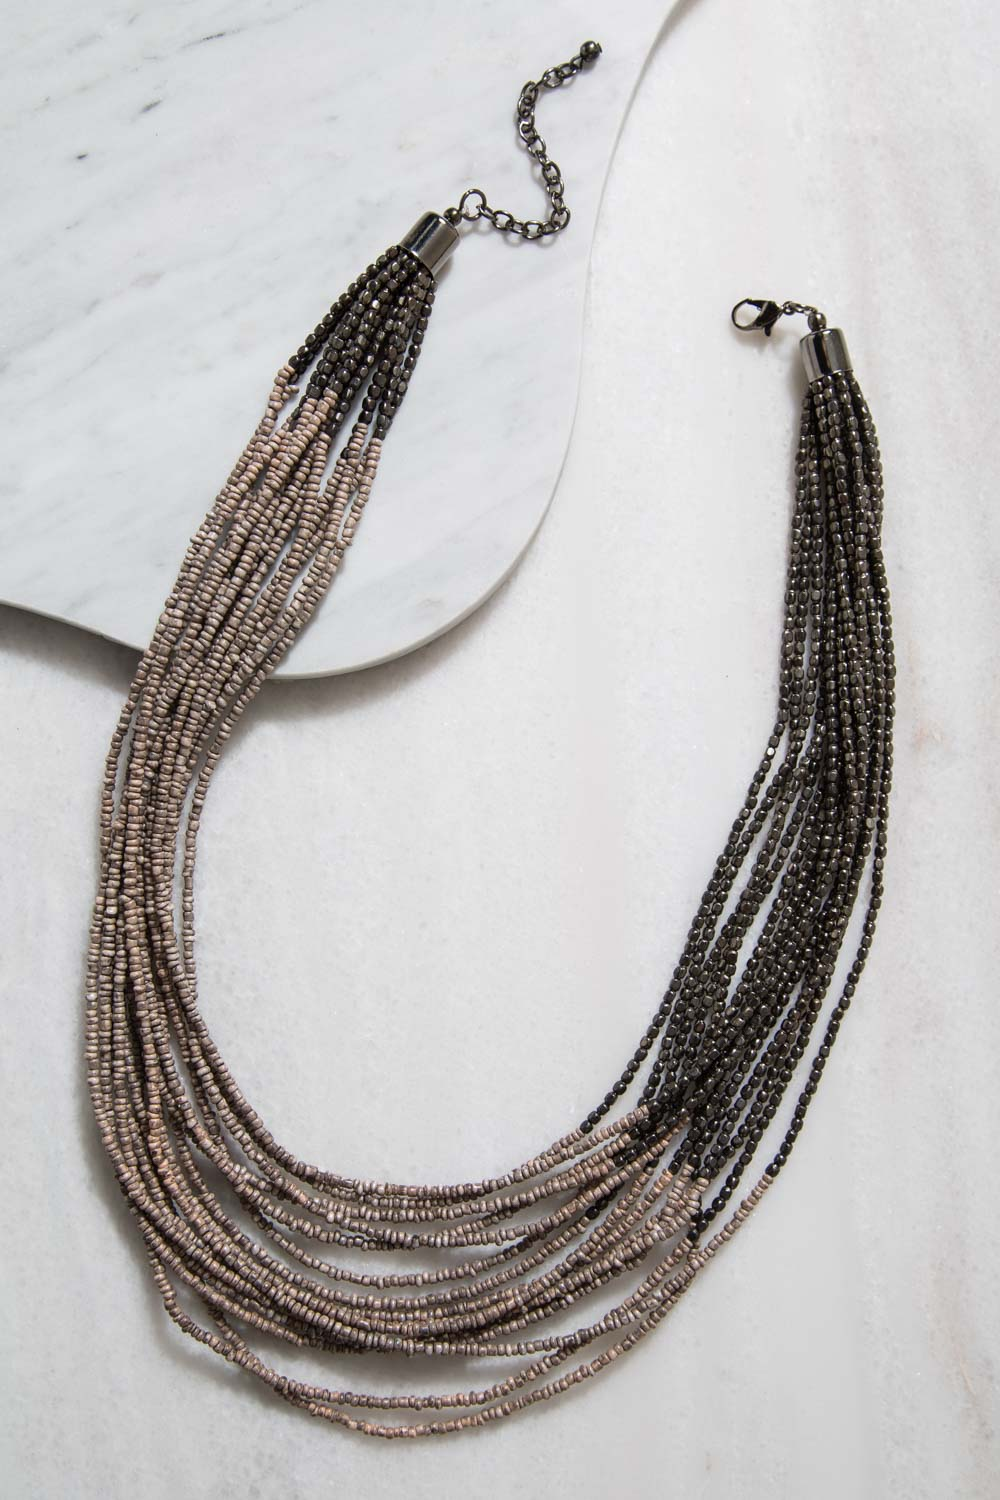 Type 2 Charcoal Embers Necklace